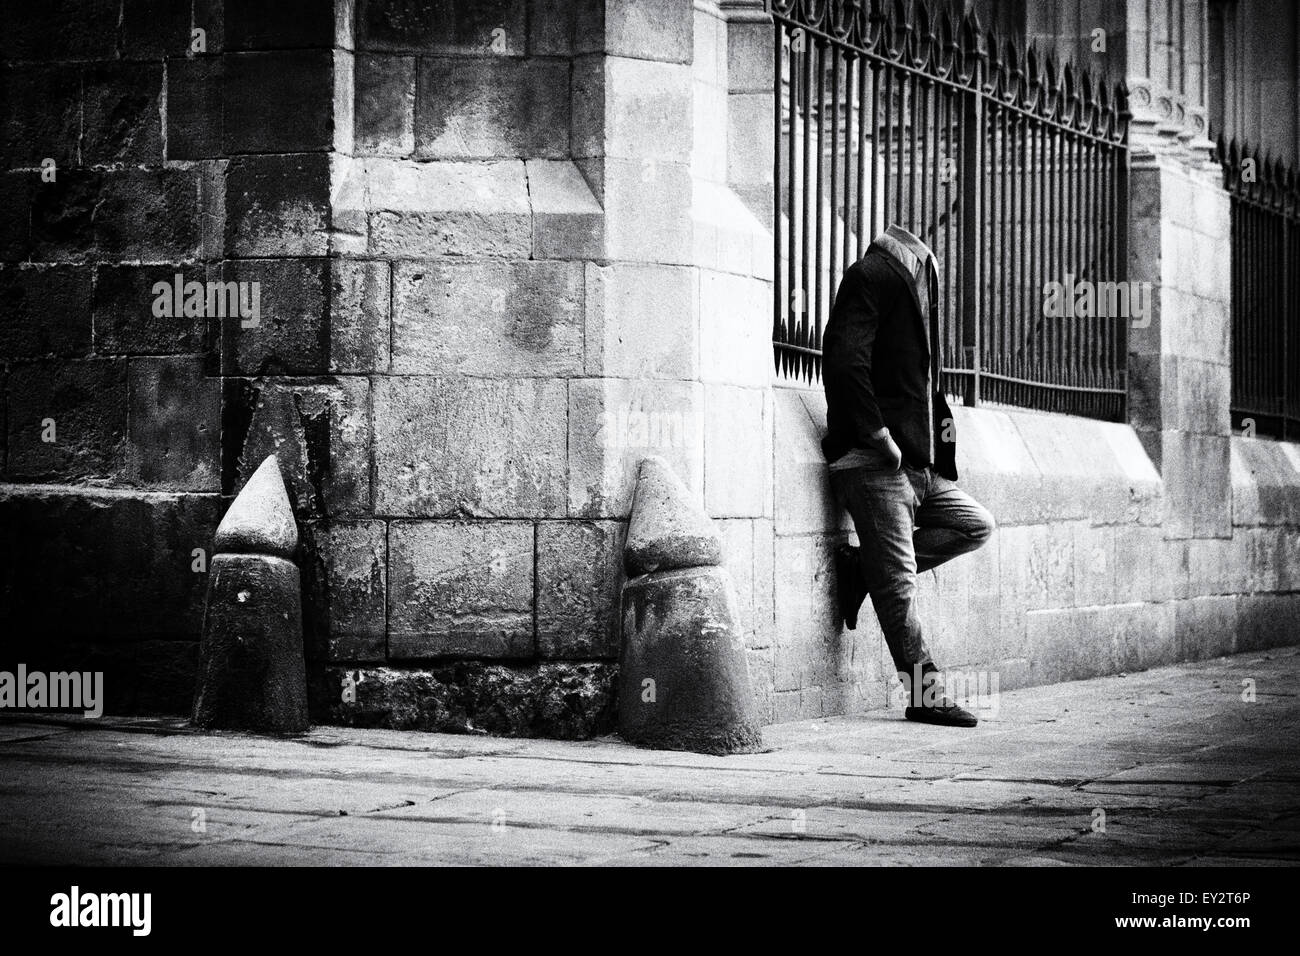 black-white-image-of-headless-street-performer-by-the-cathedral-gothic-EY2T6P.jpg